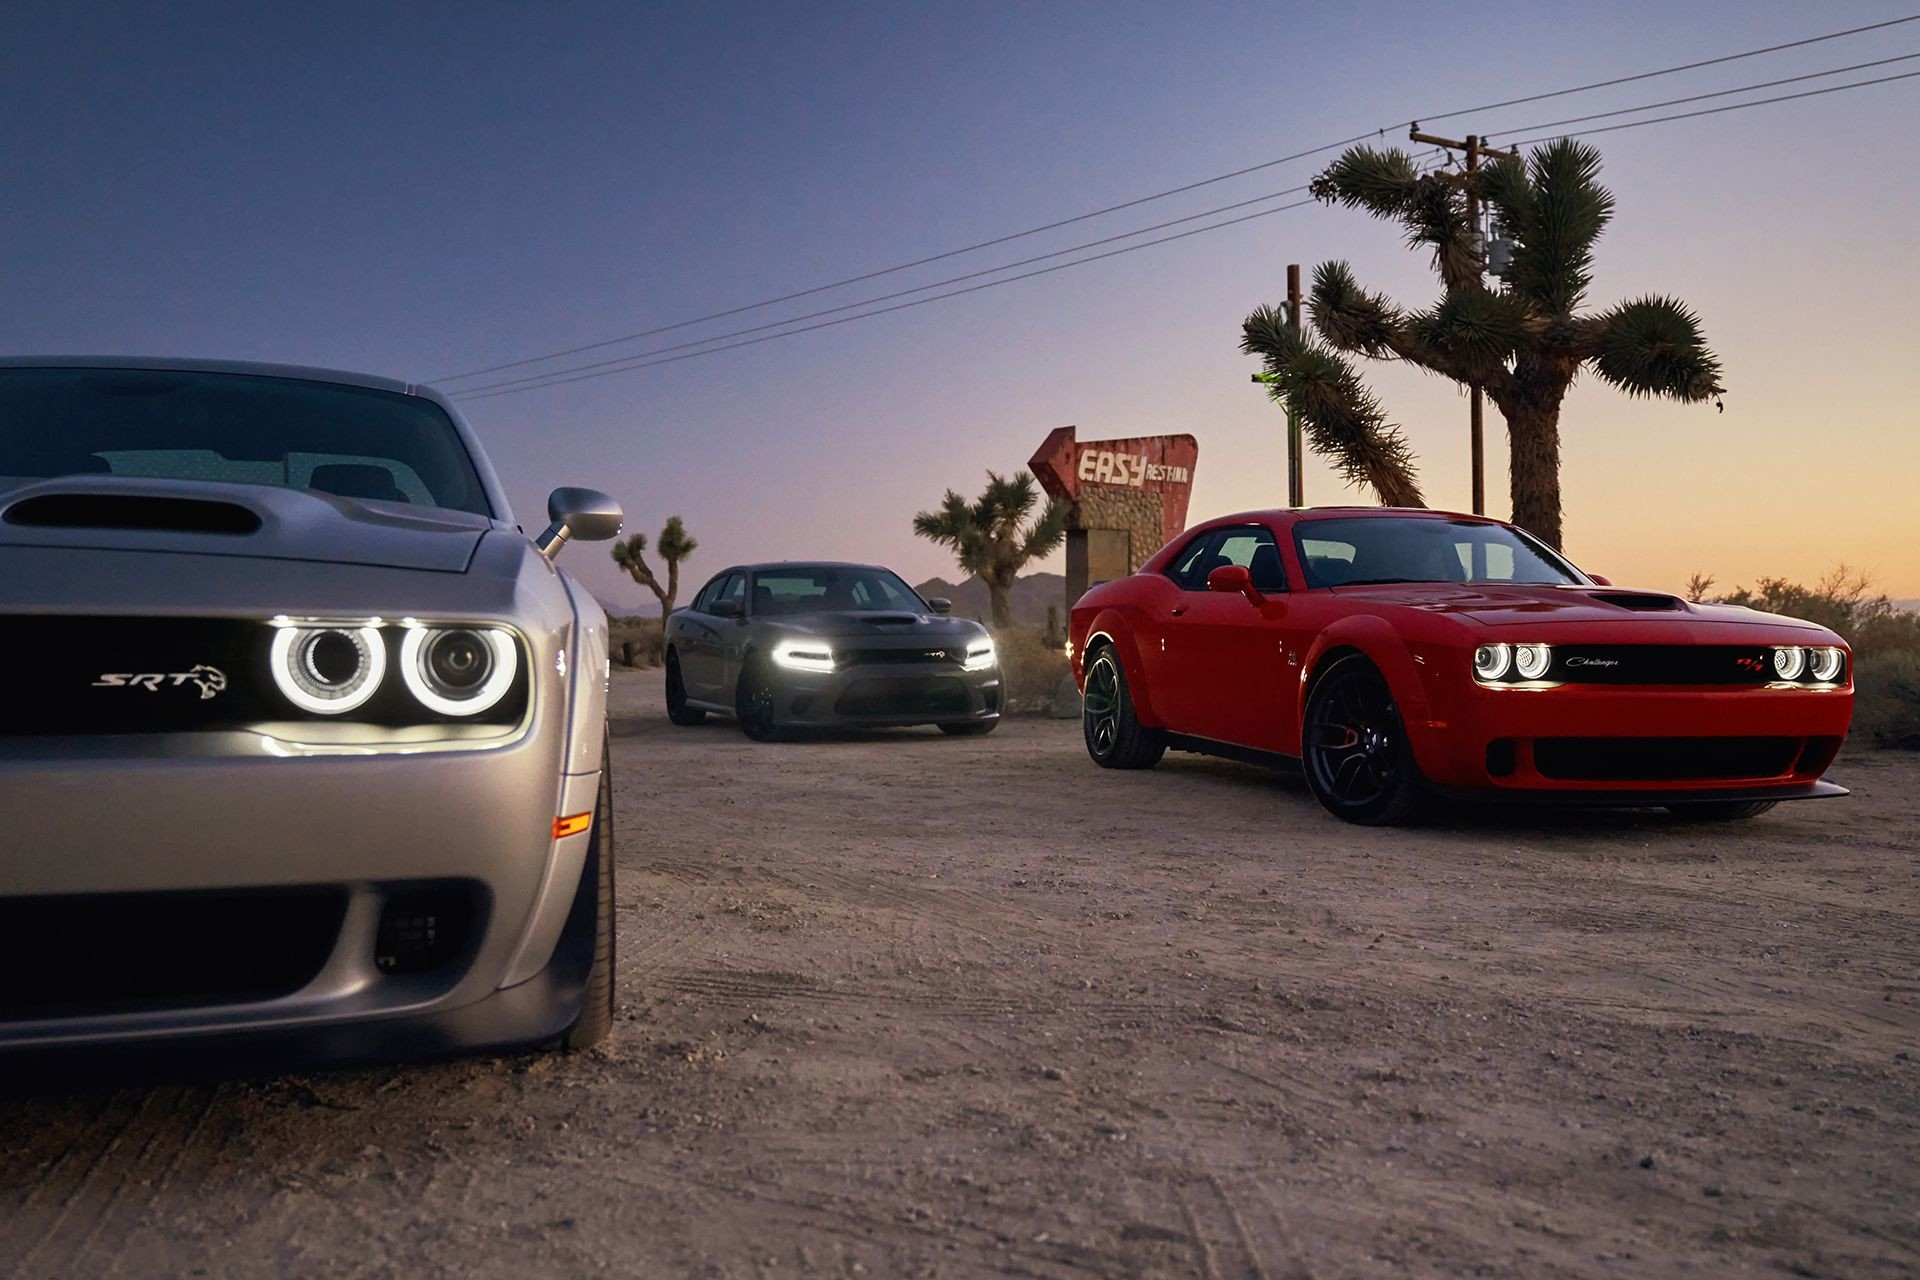 Two 2019 Dodge Challengers and one 2019 Dodge Charger parked in the desert